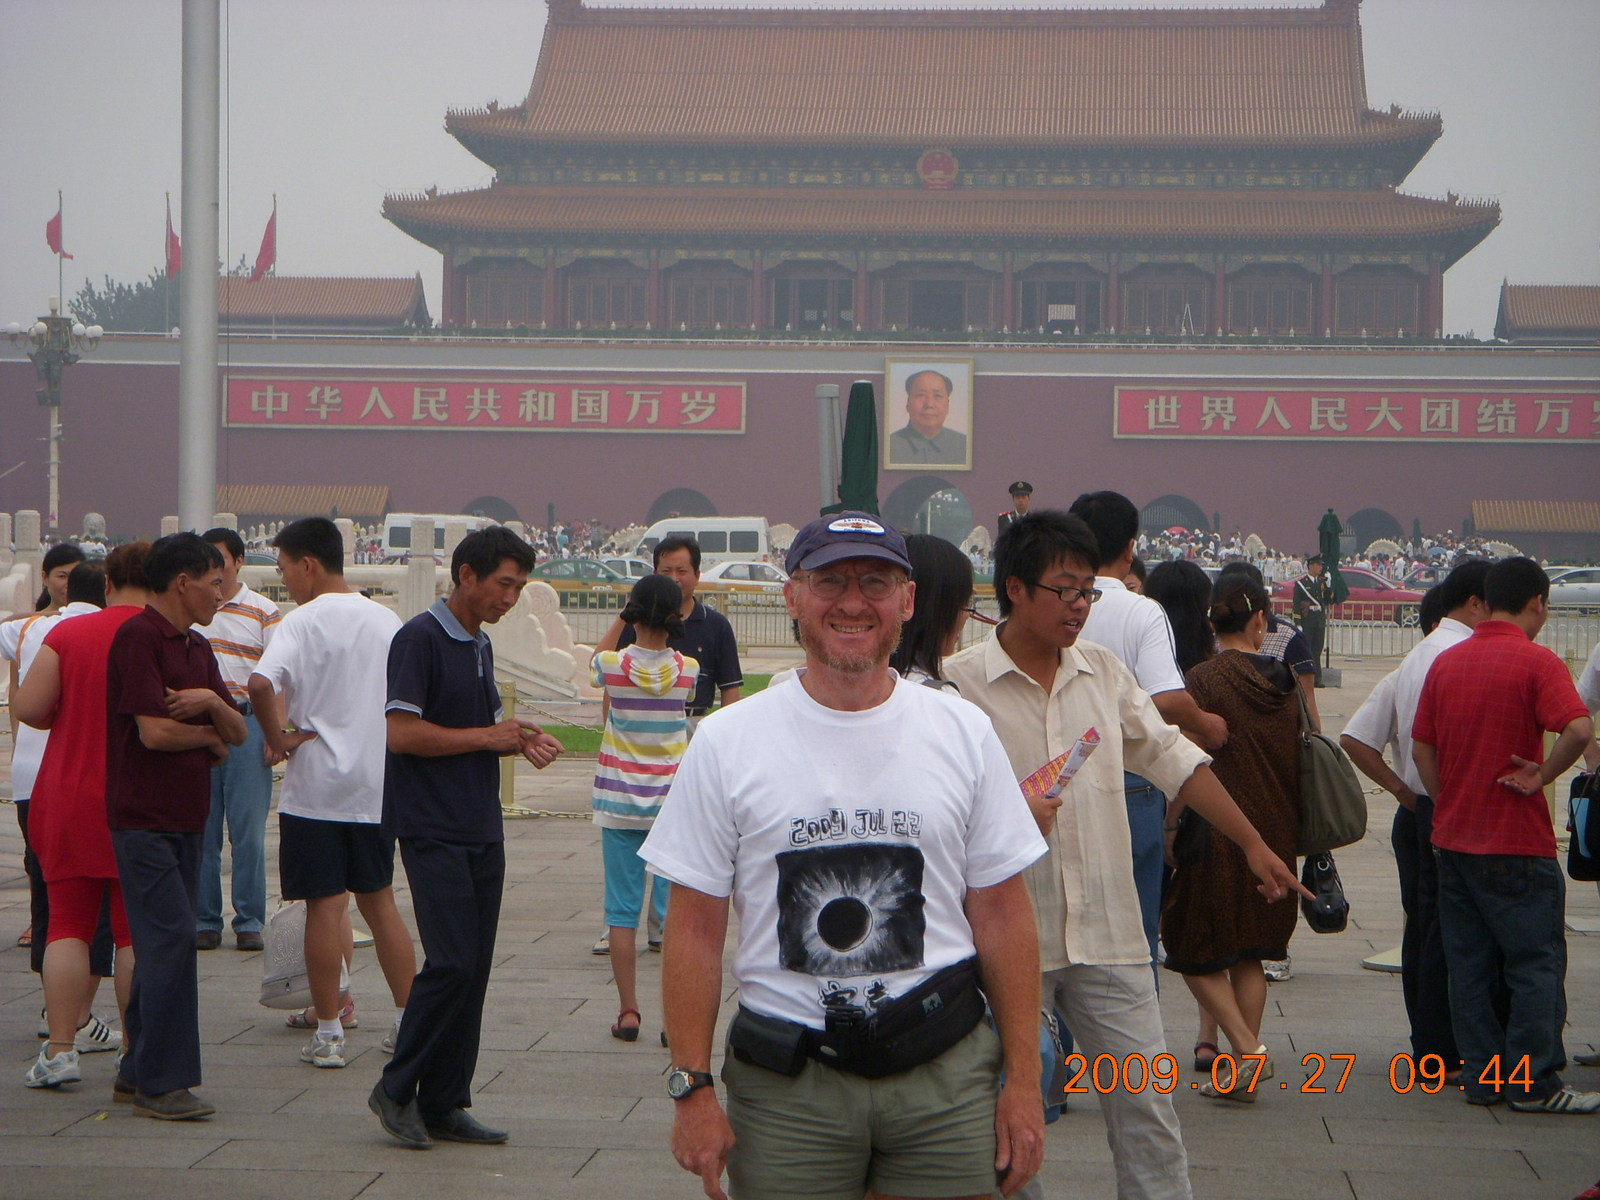 China eclipse - Beijing - Tianenman Square - Adam and Chairman Mao